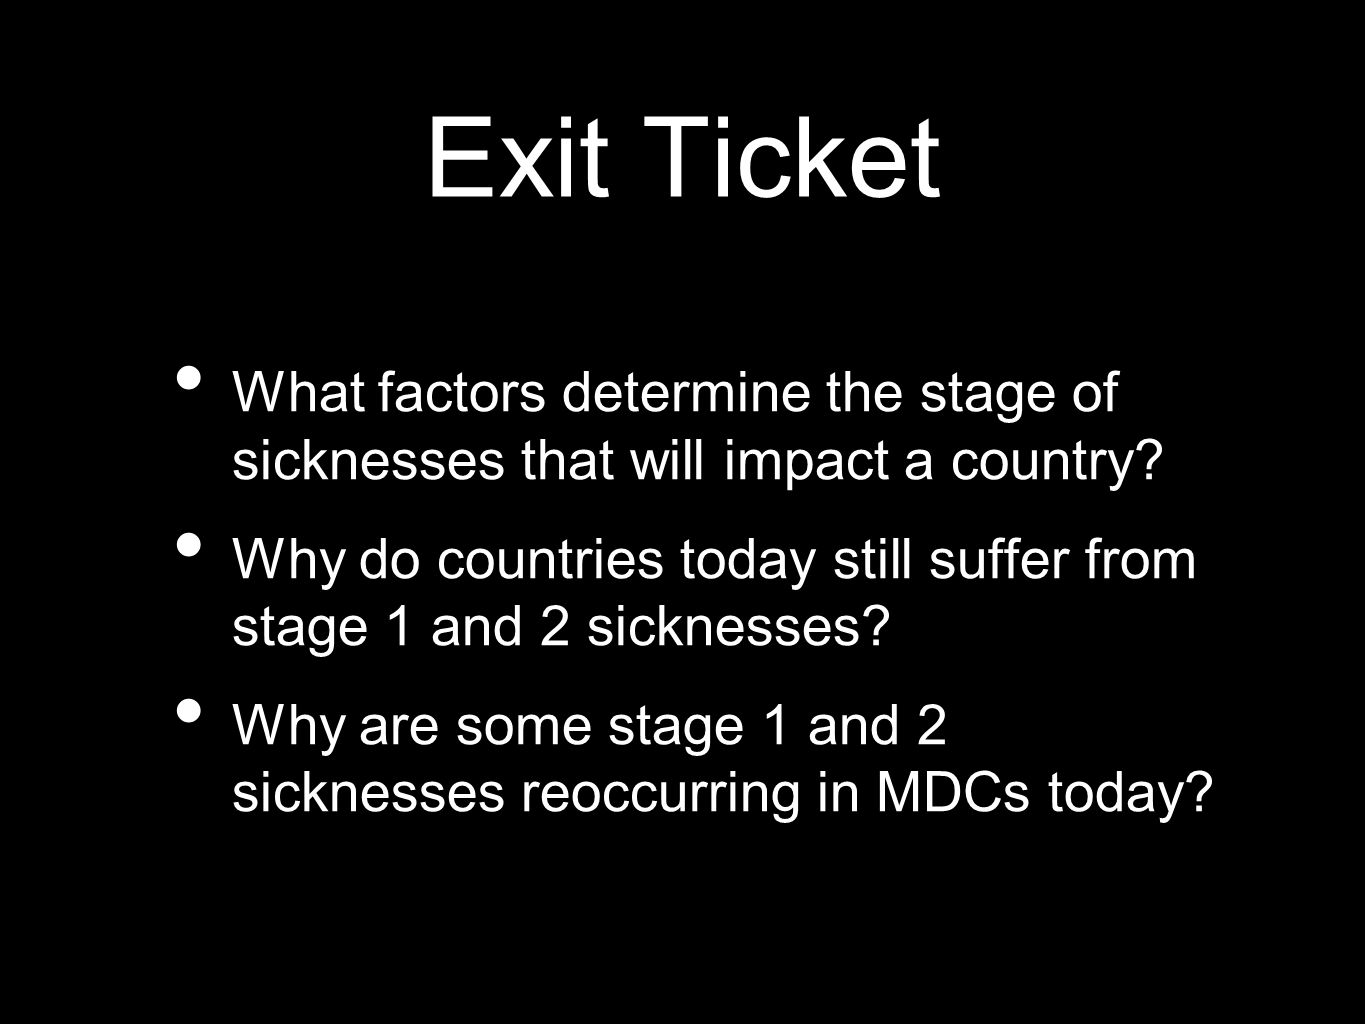 Exit Ticket What factors determine the stage of sicknesses that will impact a country